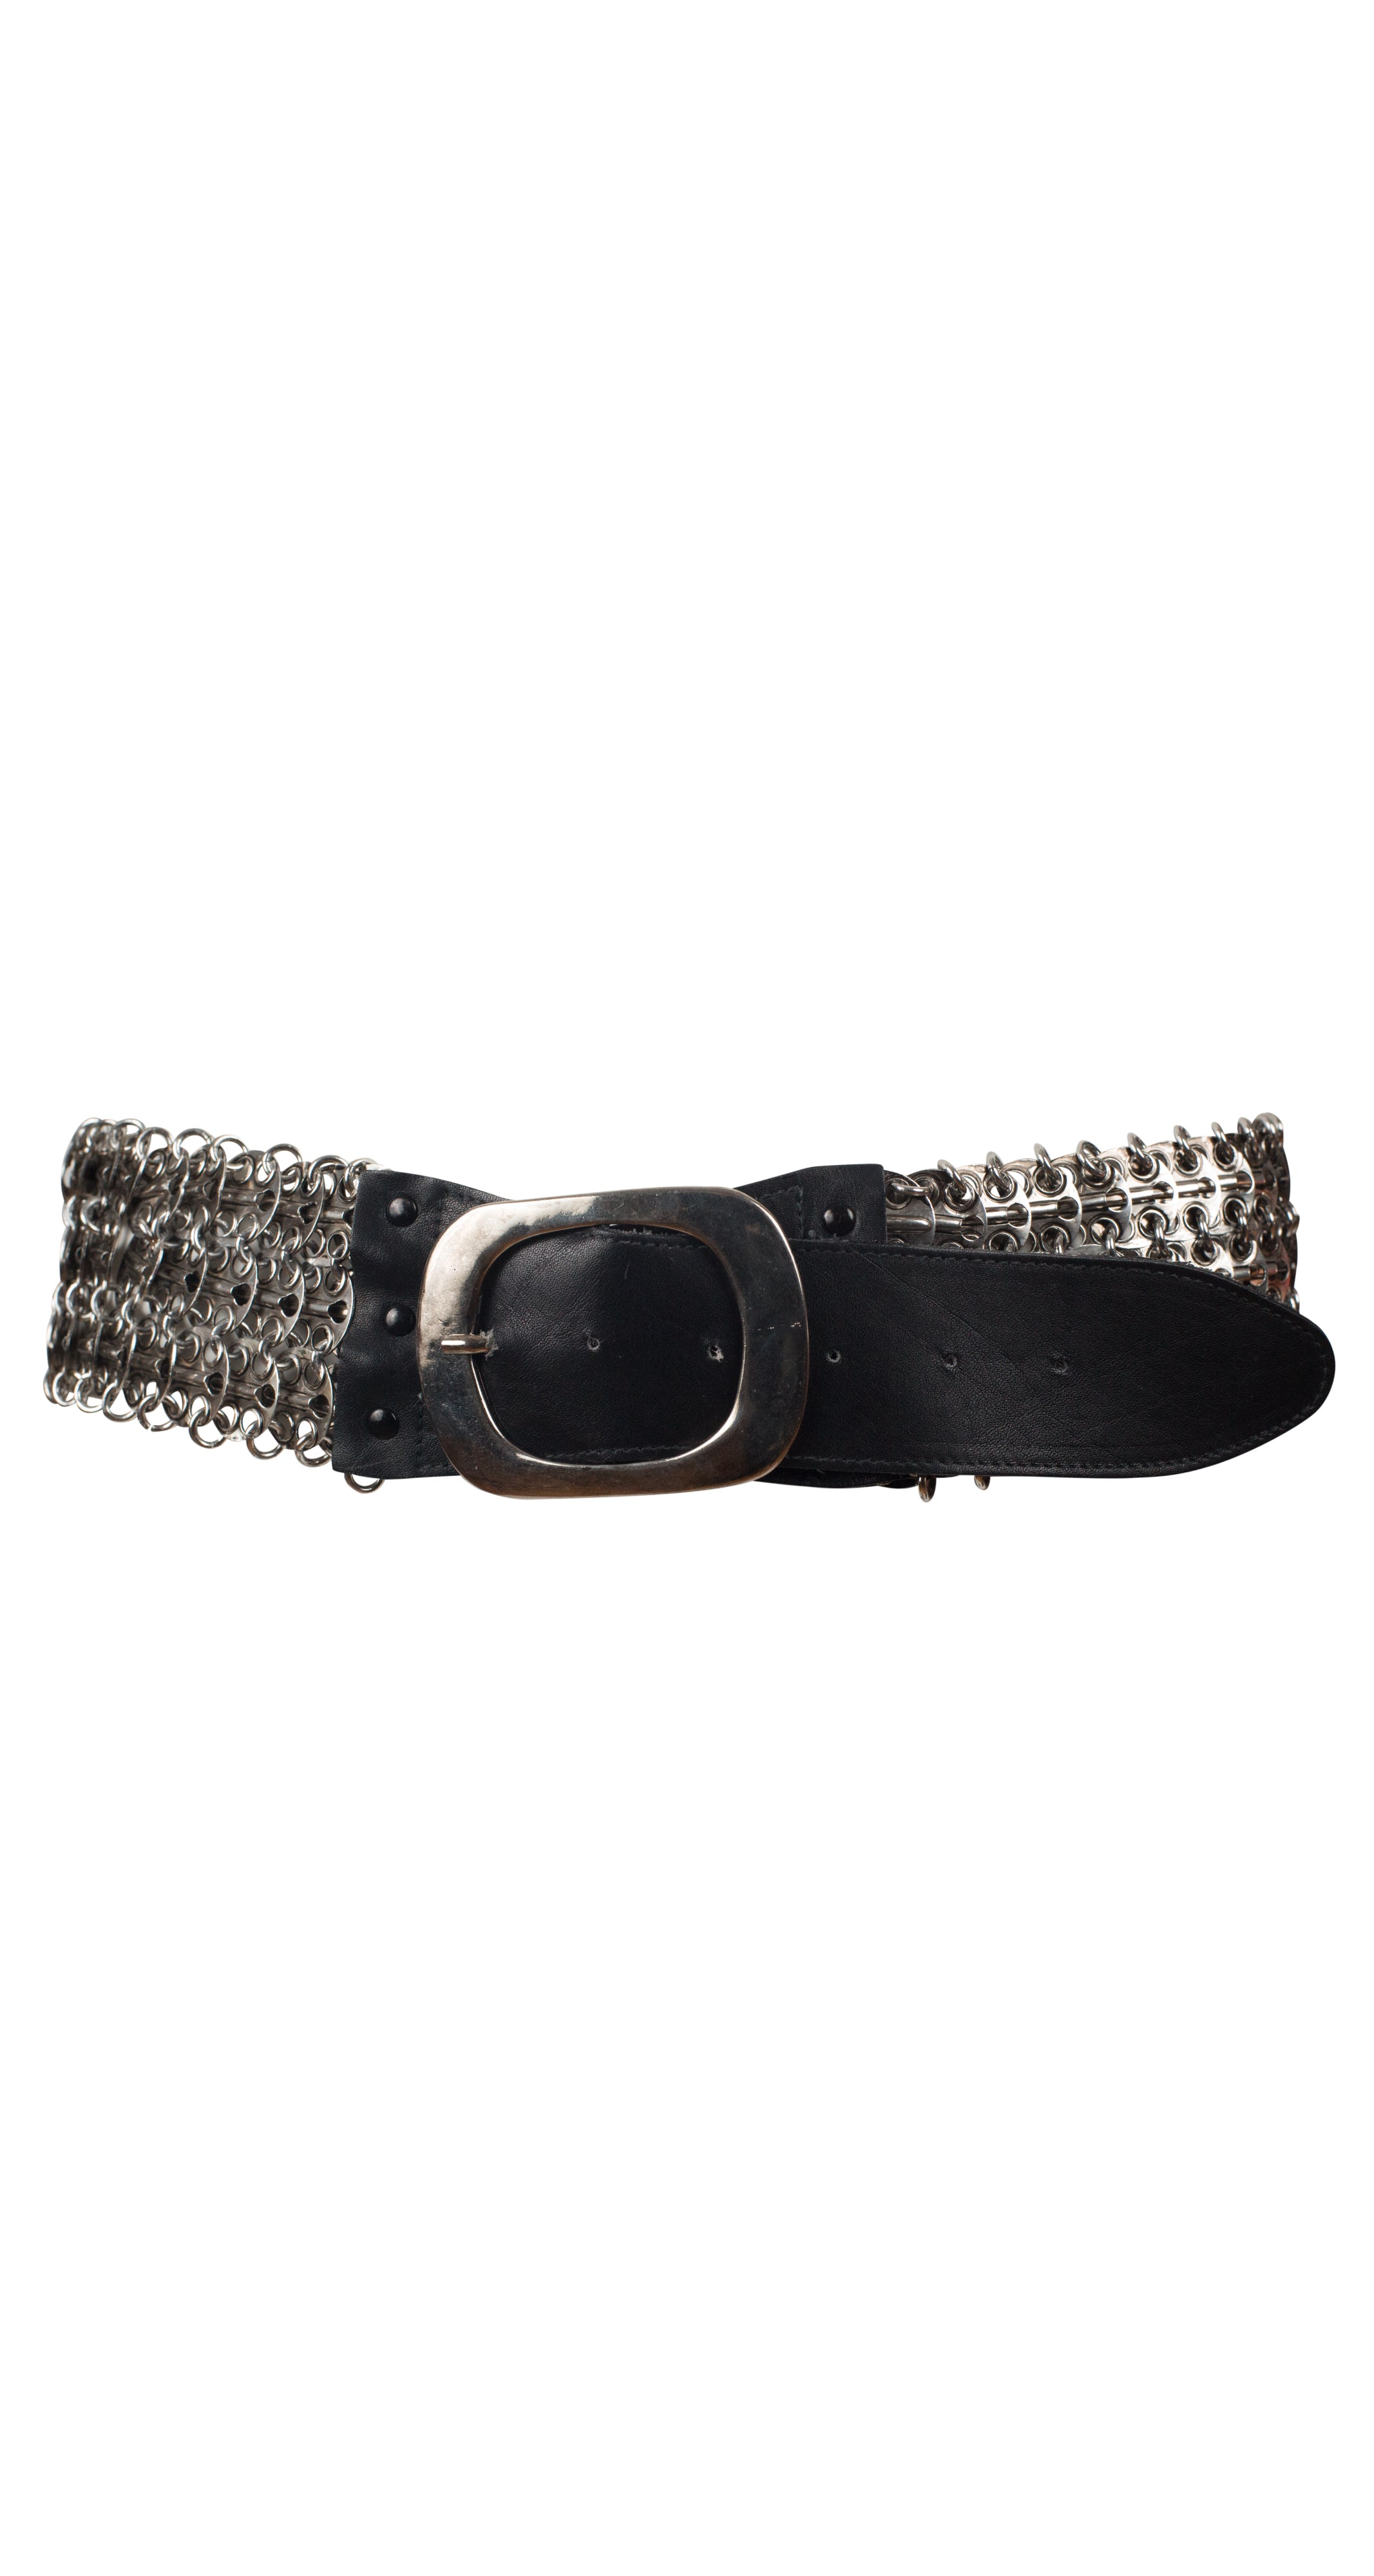 1960s Paco Rabanne Style Metal Chain Mail Belt